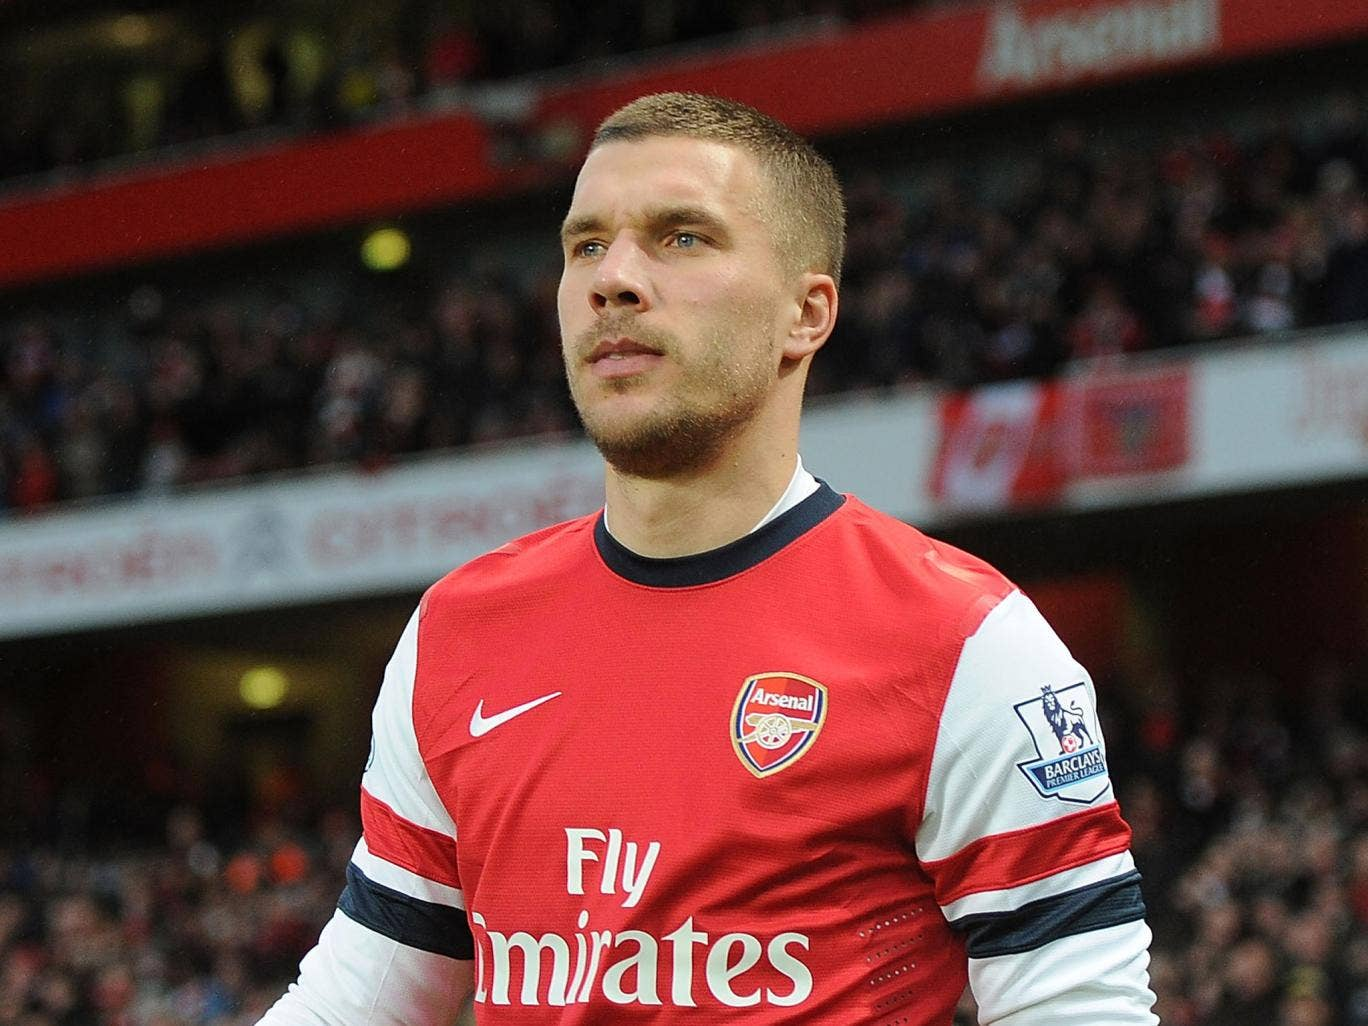 Lukas Podolski has been credited as 'one of the best finishers I have ever seen' by his manager Arsene Wenger